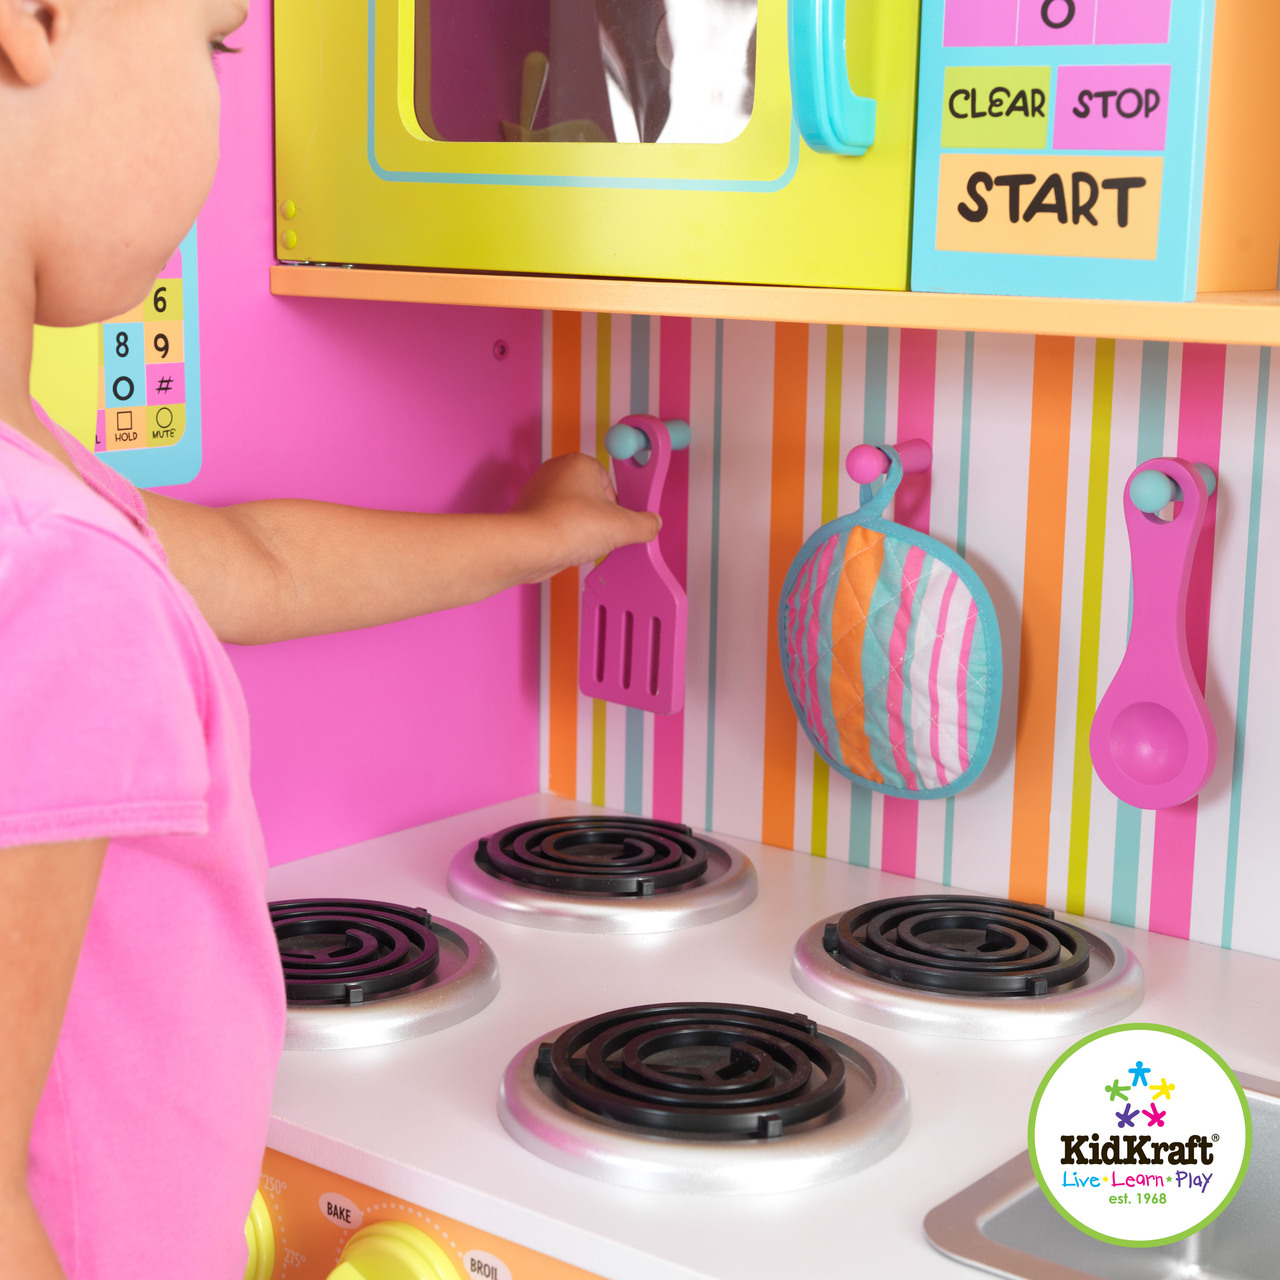 Kidkraft Big Amp Bright Kitchen On Sale Now Sydney Pickup